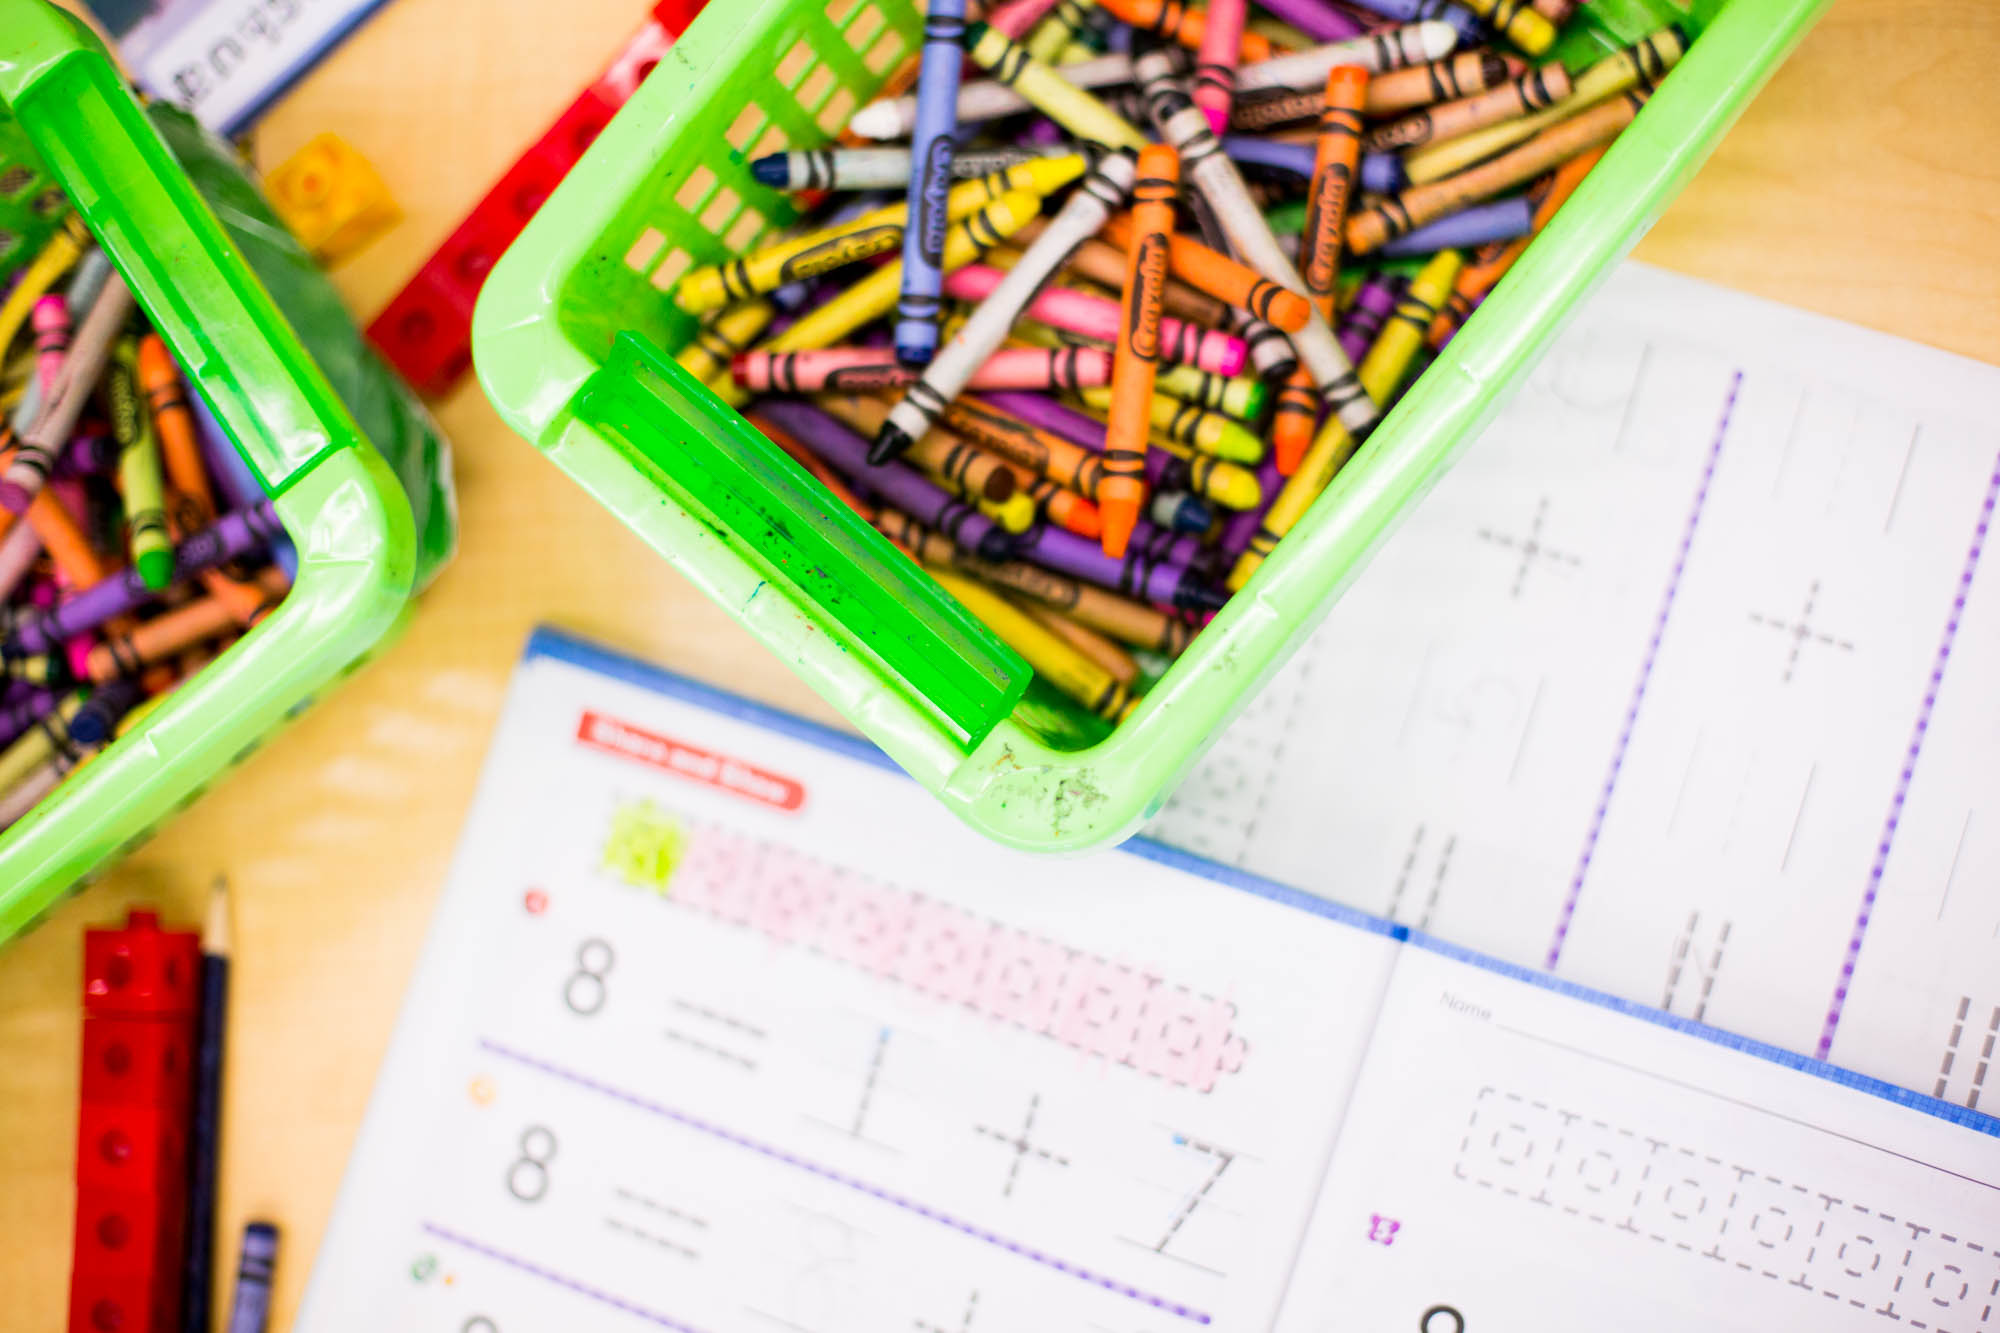 Box of crayons and math notebooks